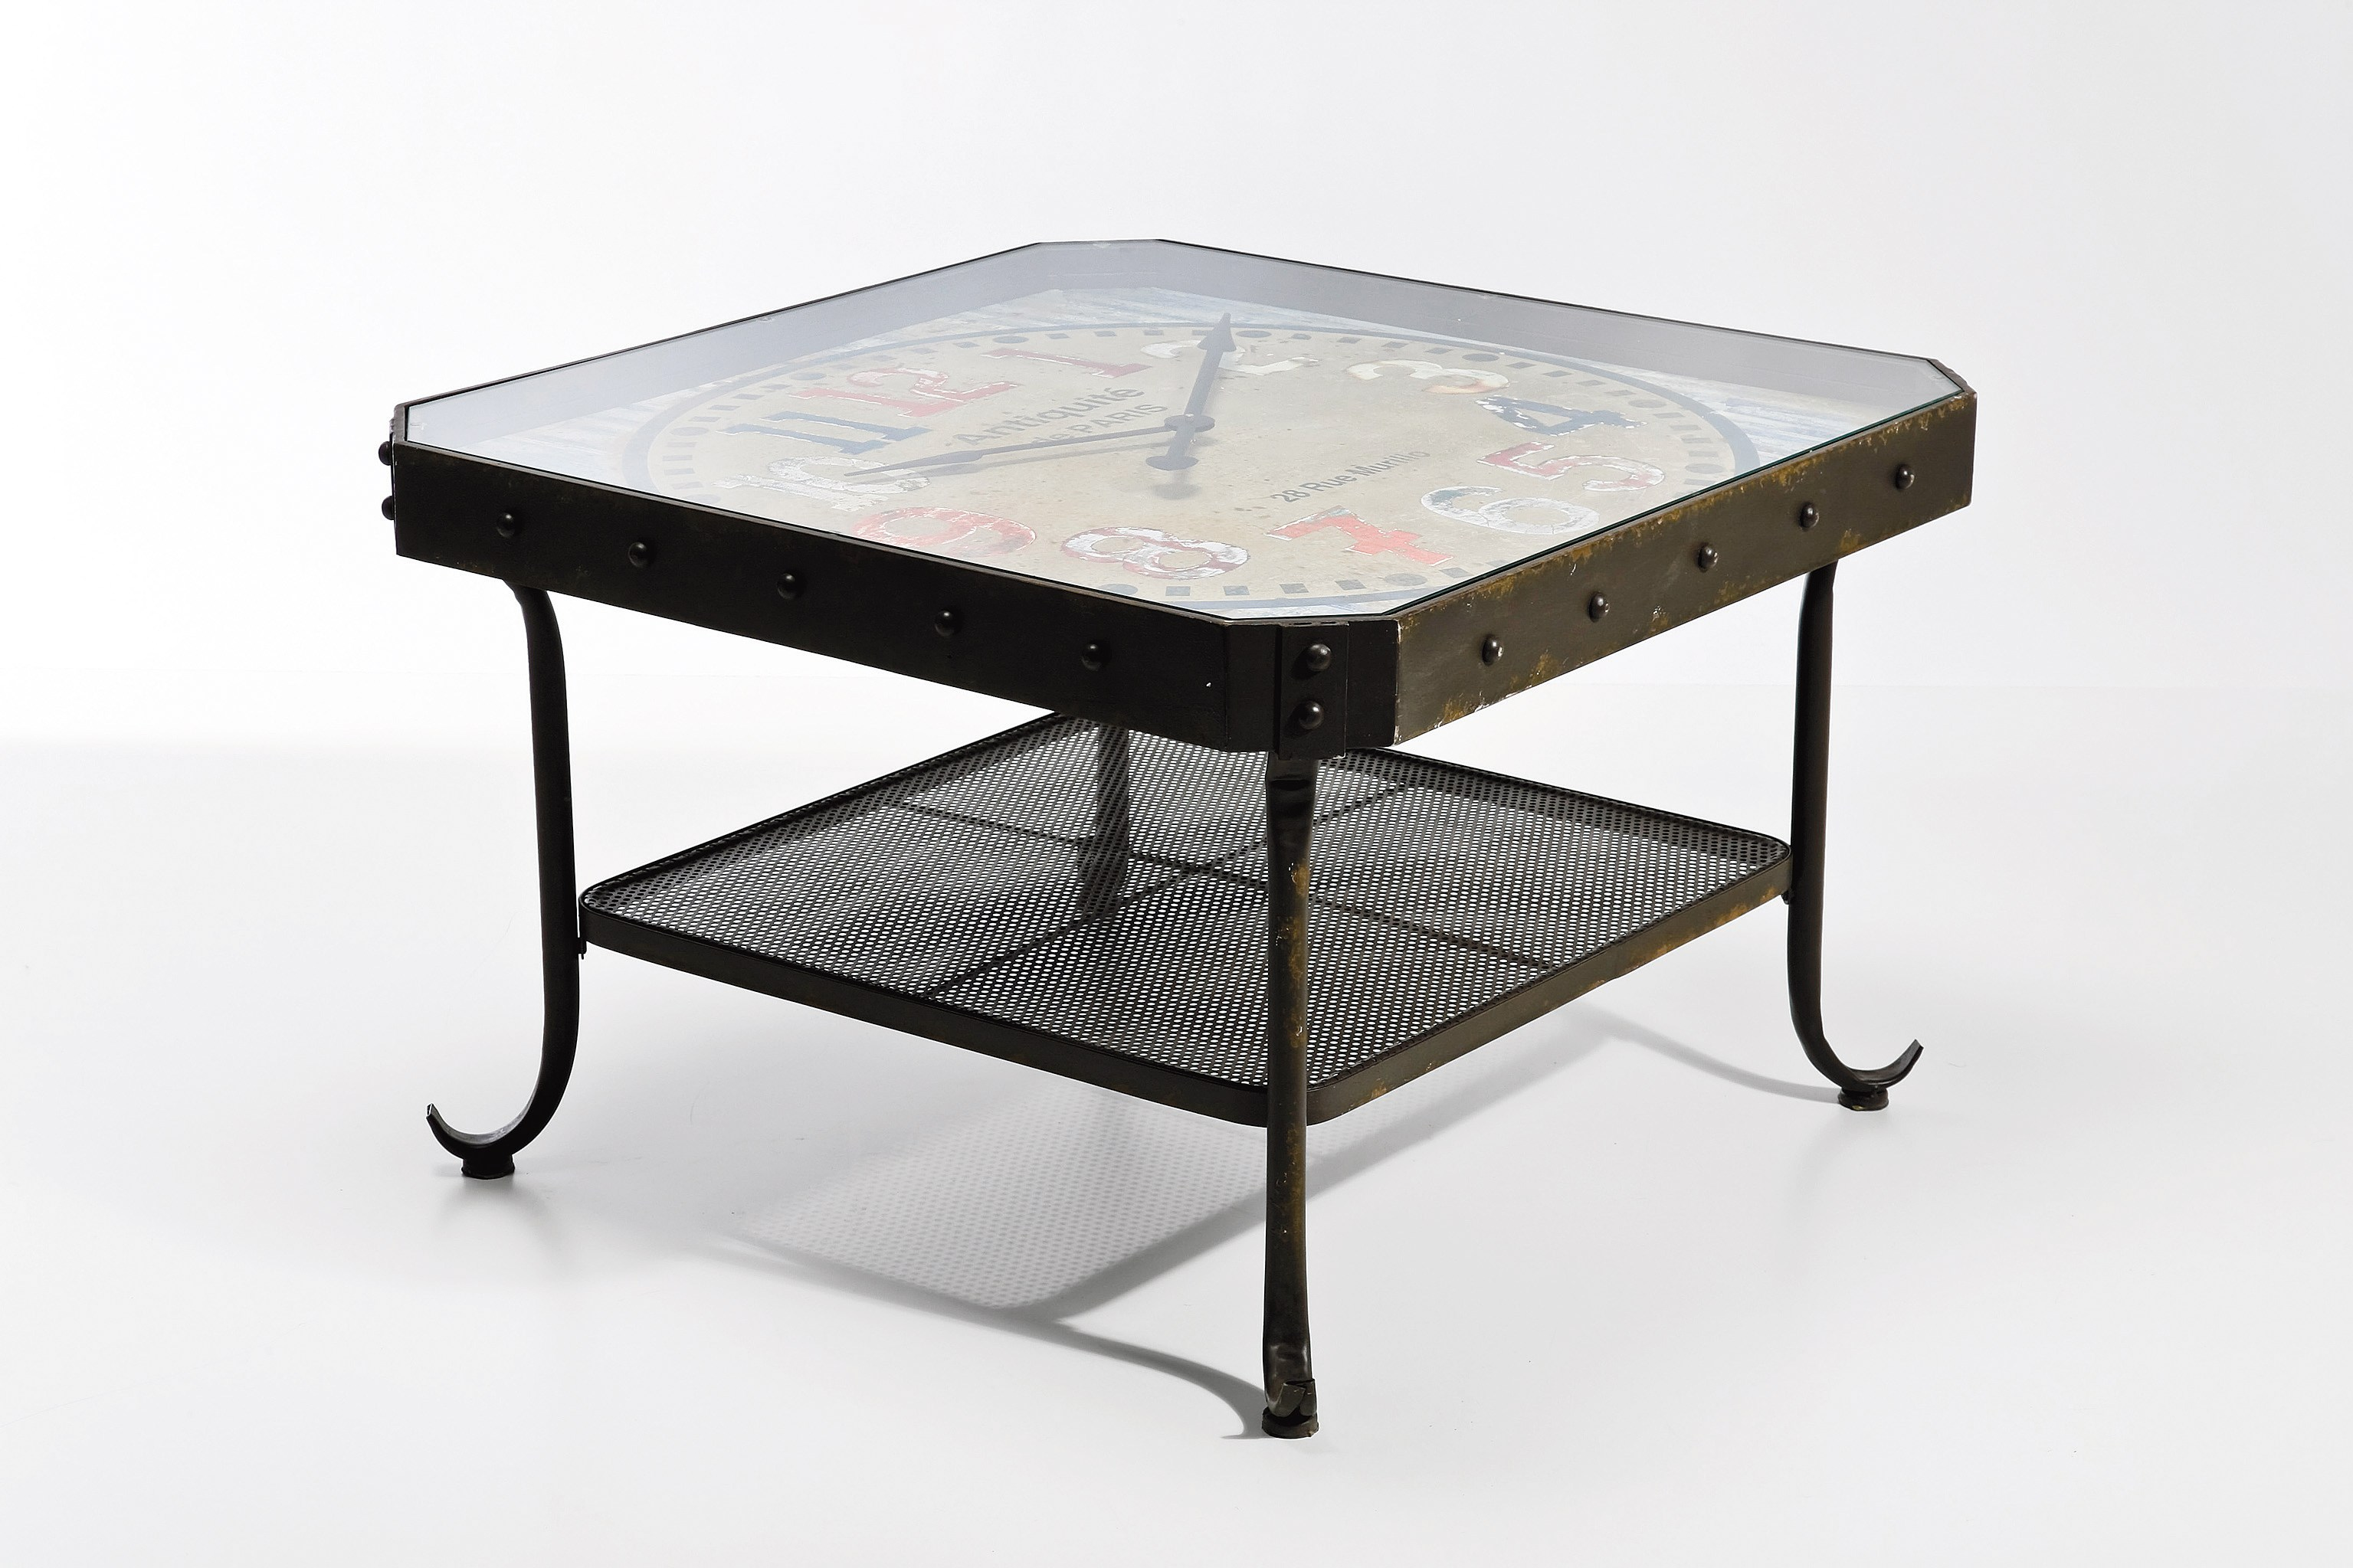 Square Steel Coffee Table Antique Clock Low Coffee Table By Kare Design